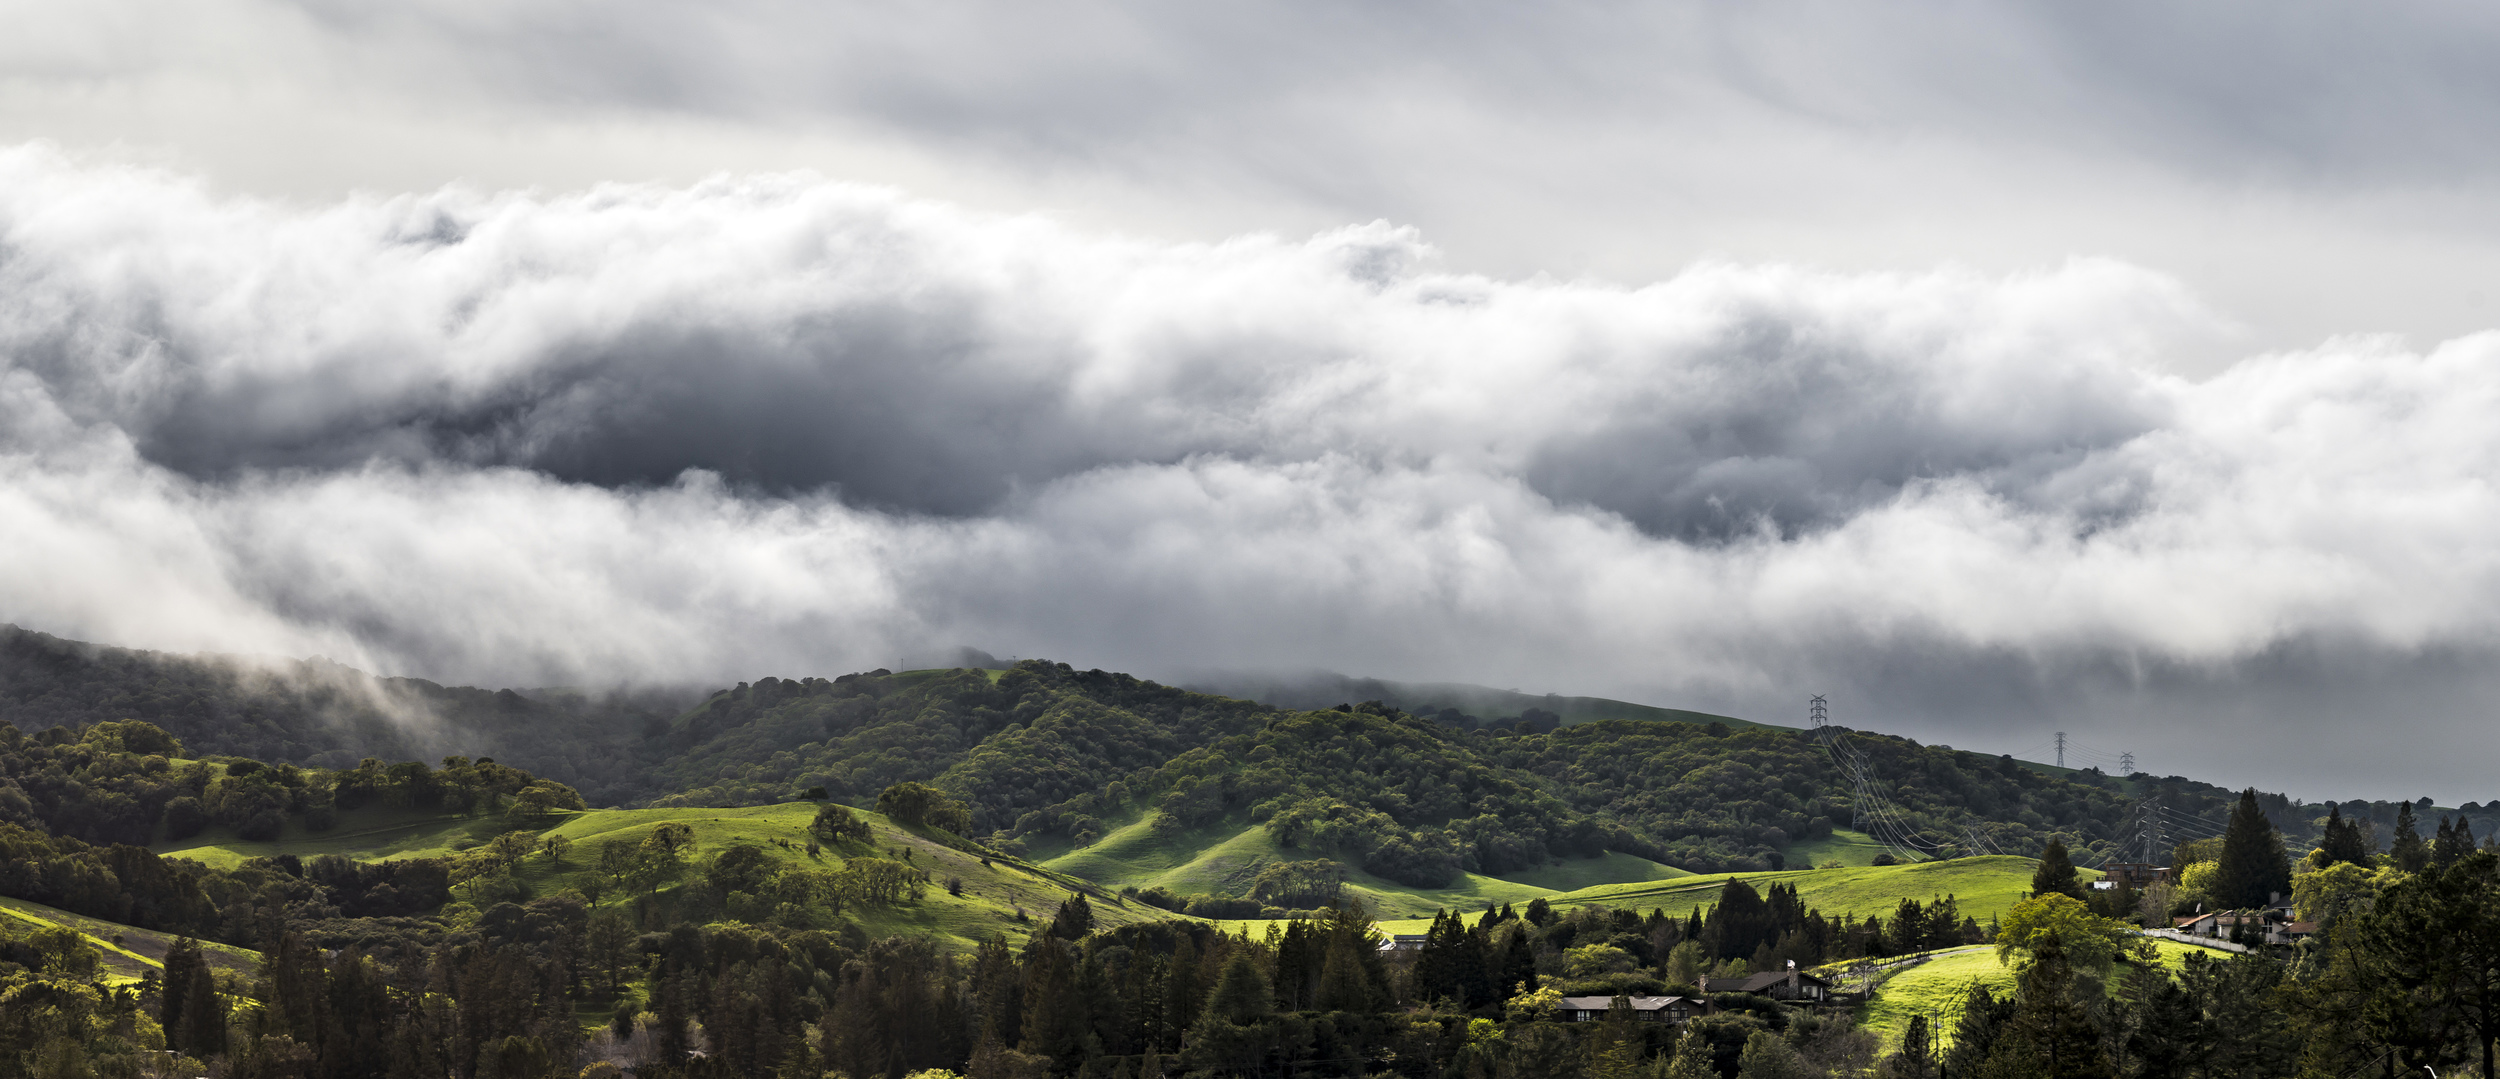 Tumultuous clouds flow over the hills of Briones Regional Park as a large storm approaches the East Bay